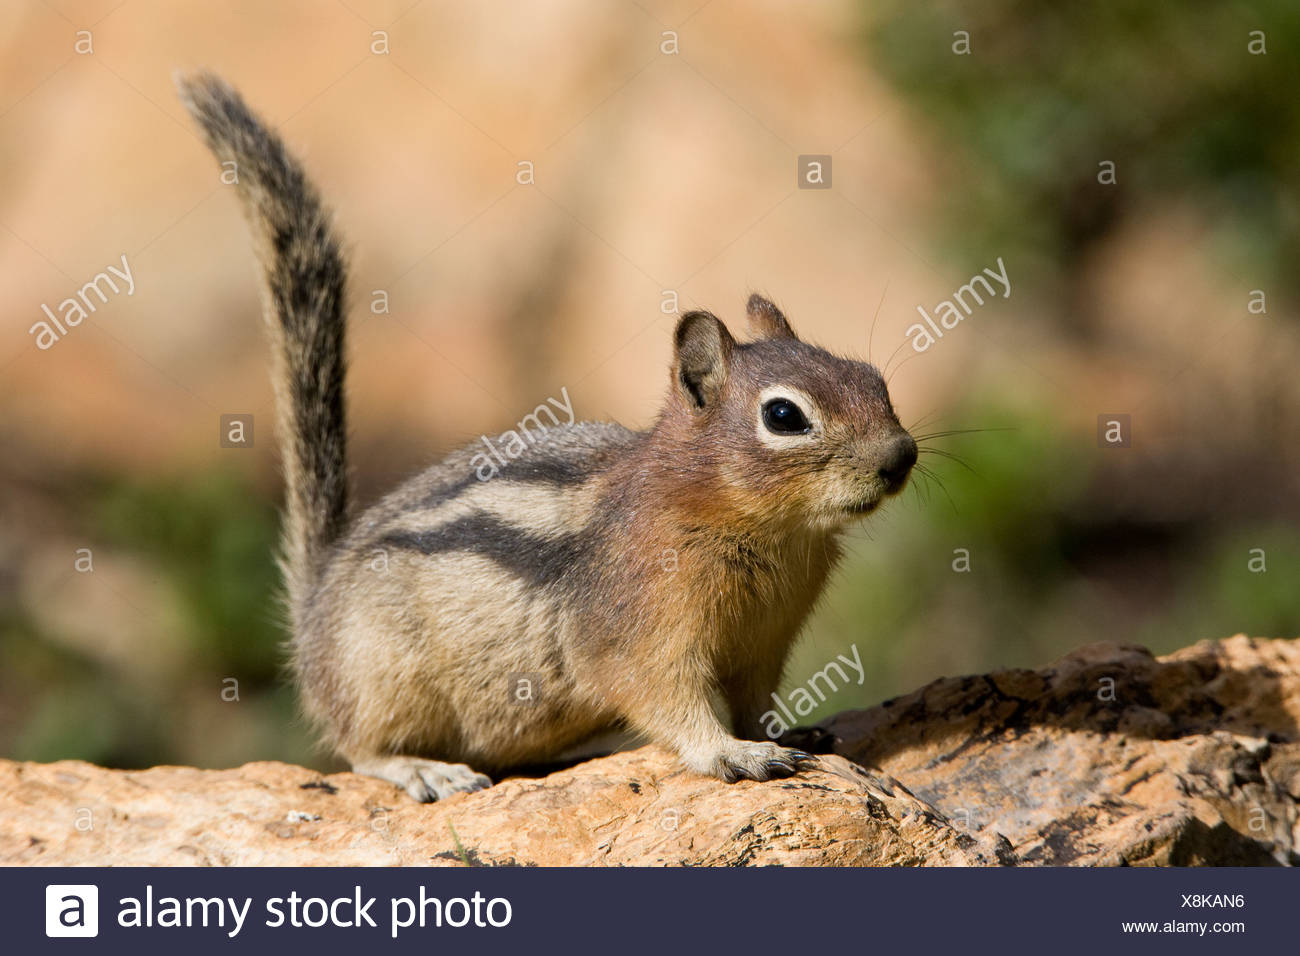 Golden-mantled ground squirrel (Spermophilus lateralis), Hidden Lake Overlook area, Glacier National Park, Montana, USA. - Stock Image